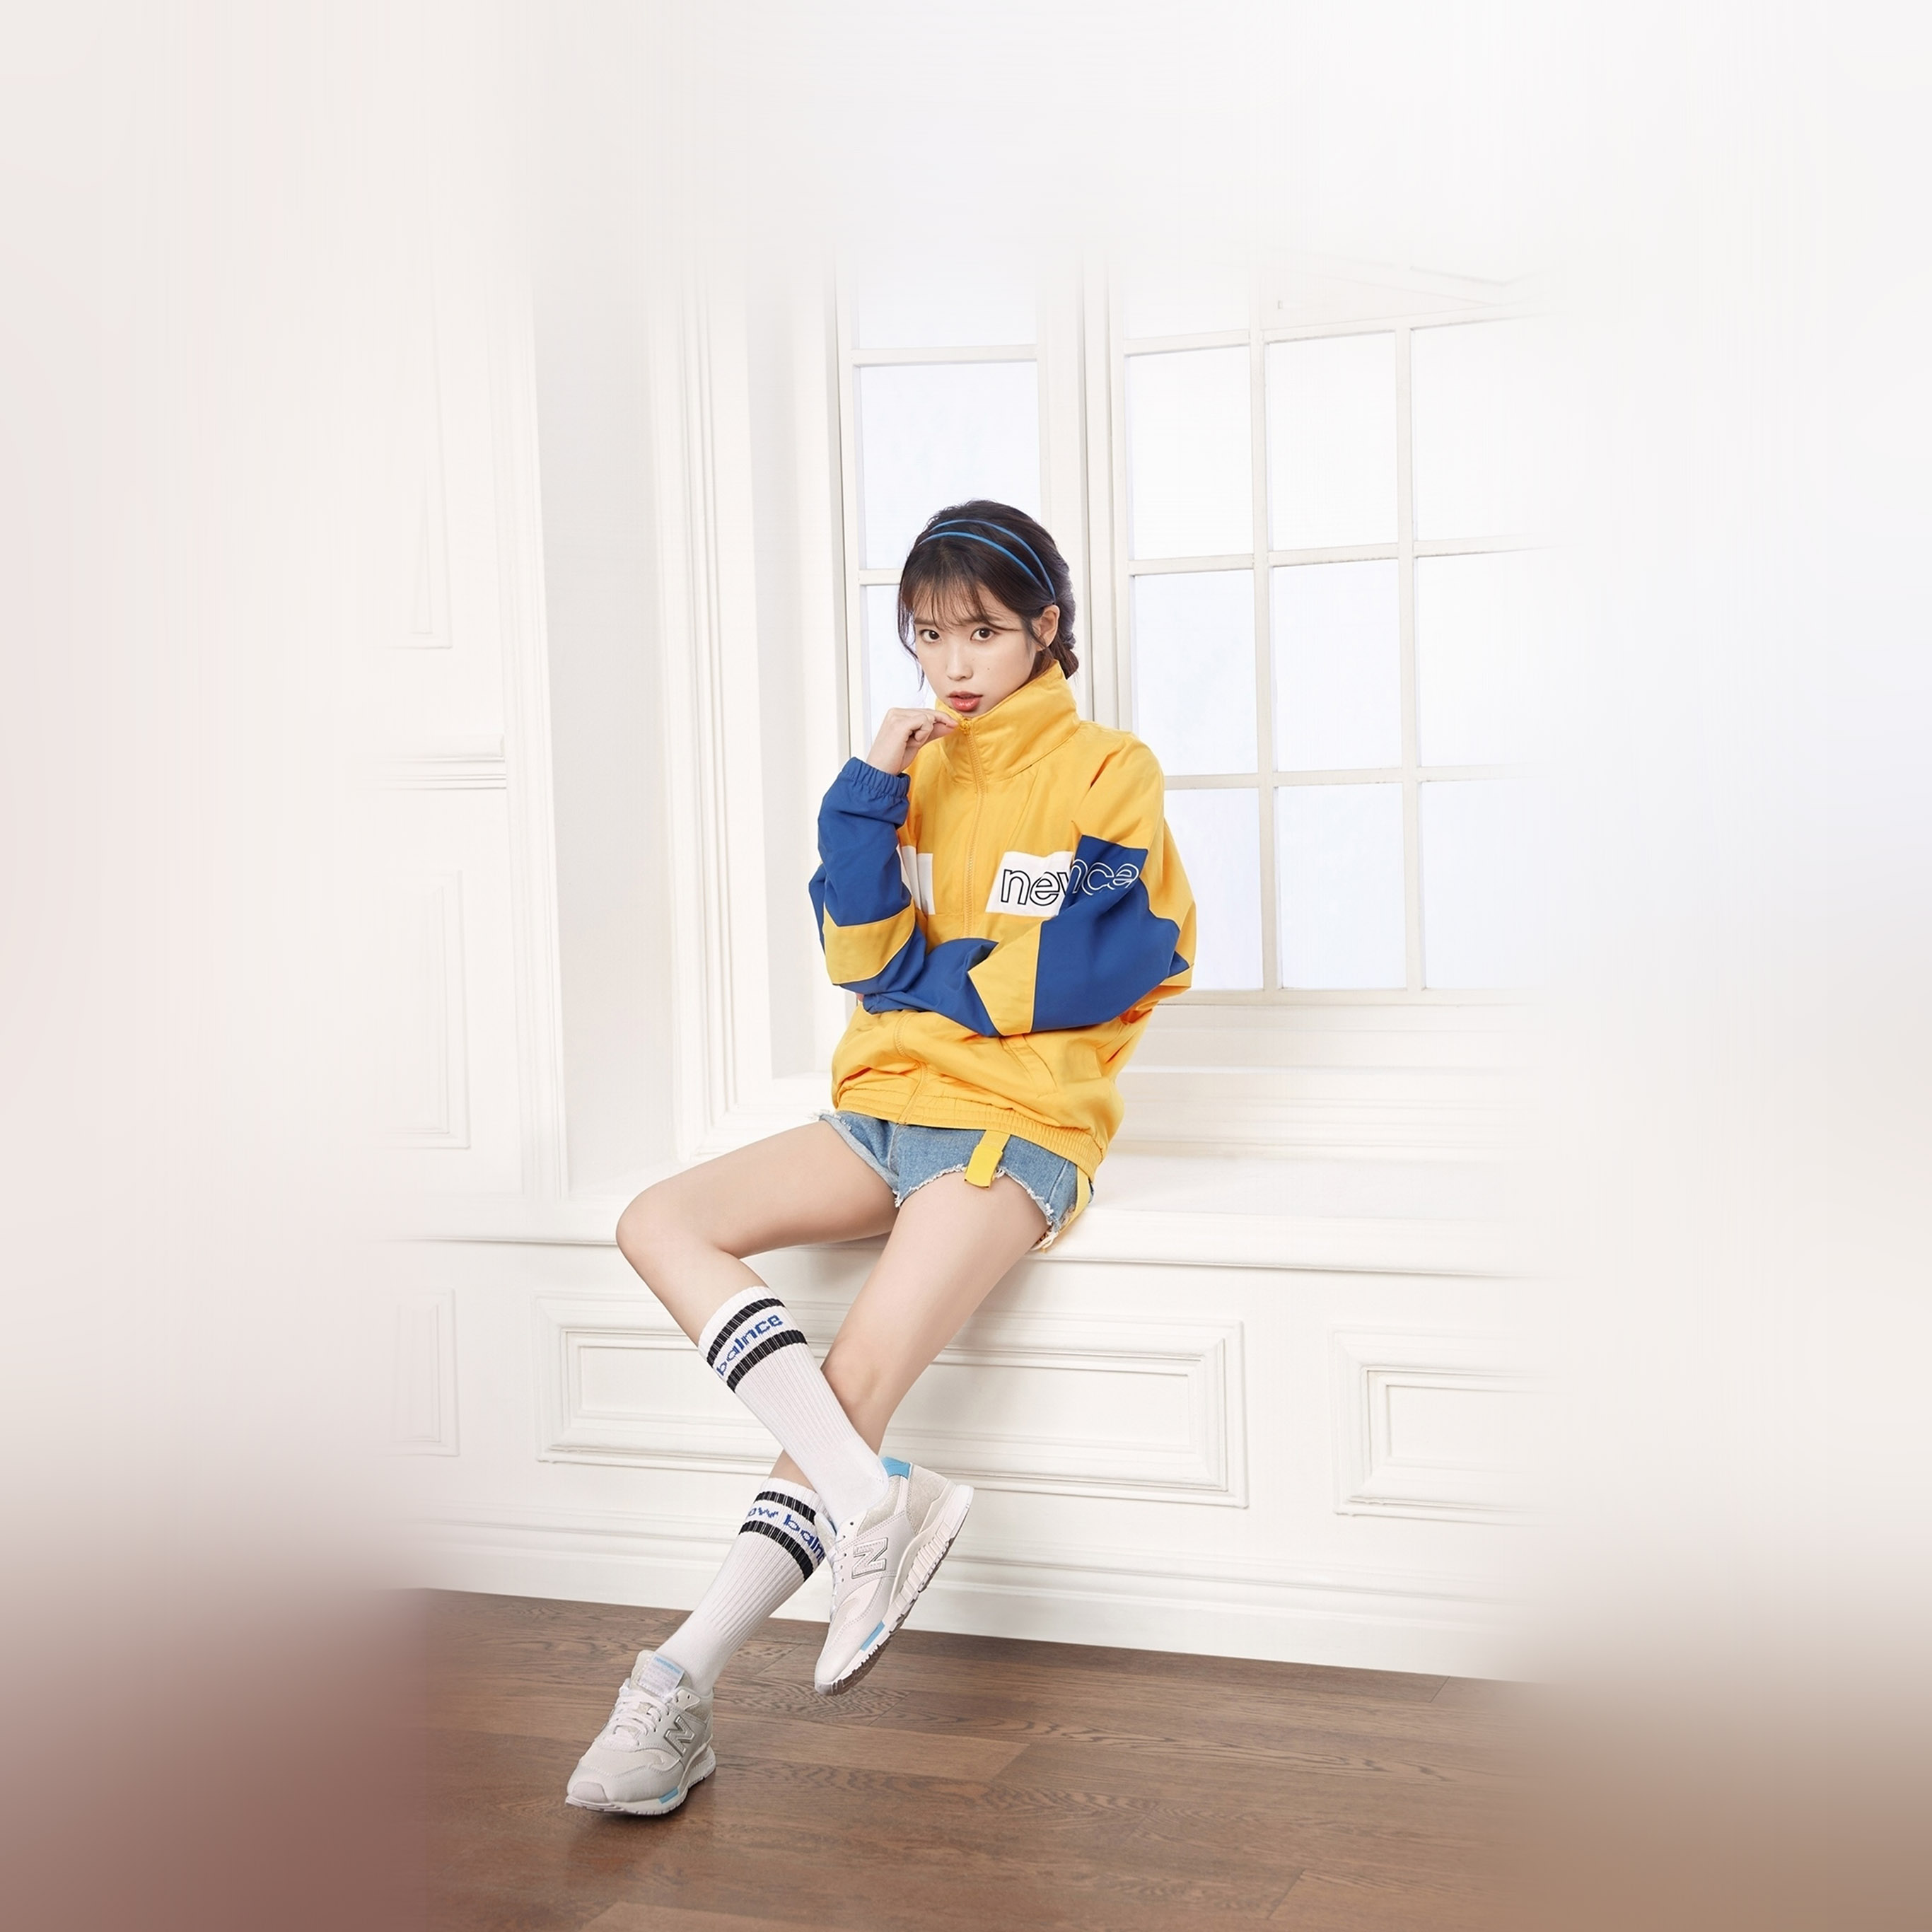 Hp35 Iu Korean Singer Girl Kpop Wallpaper